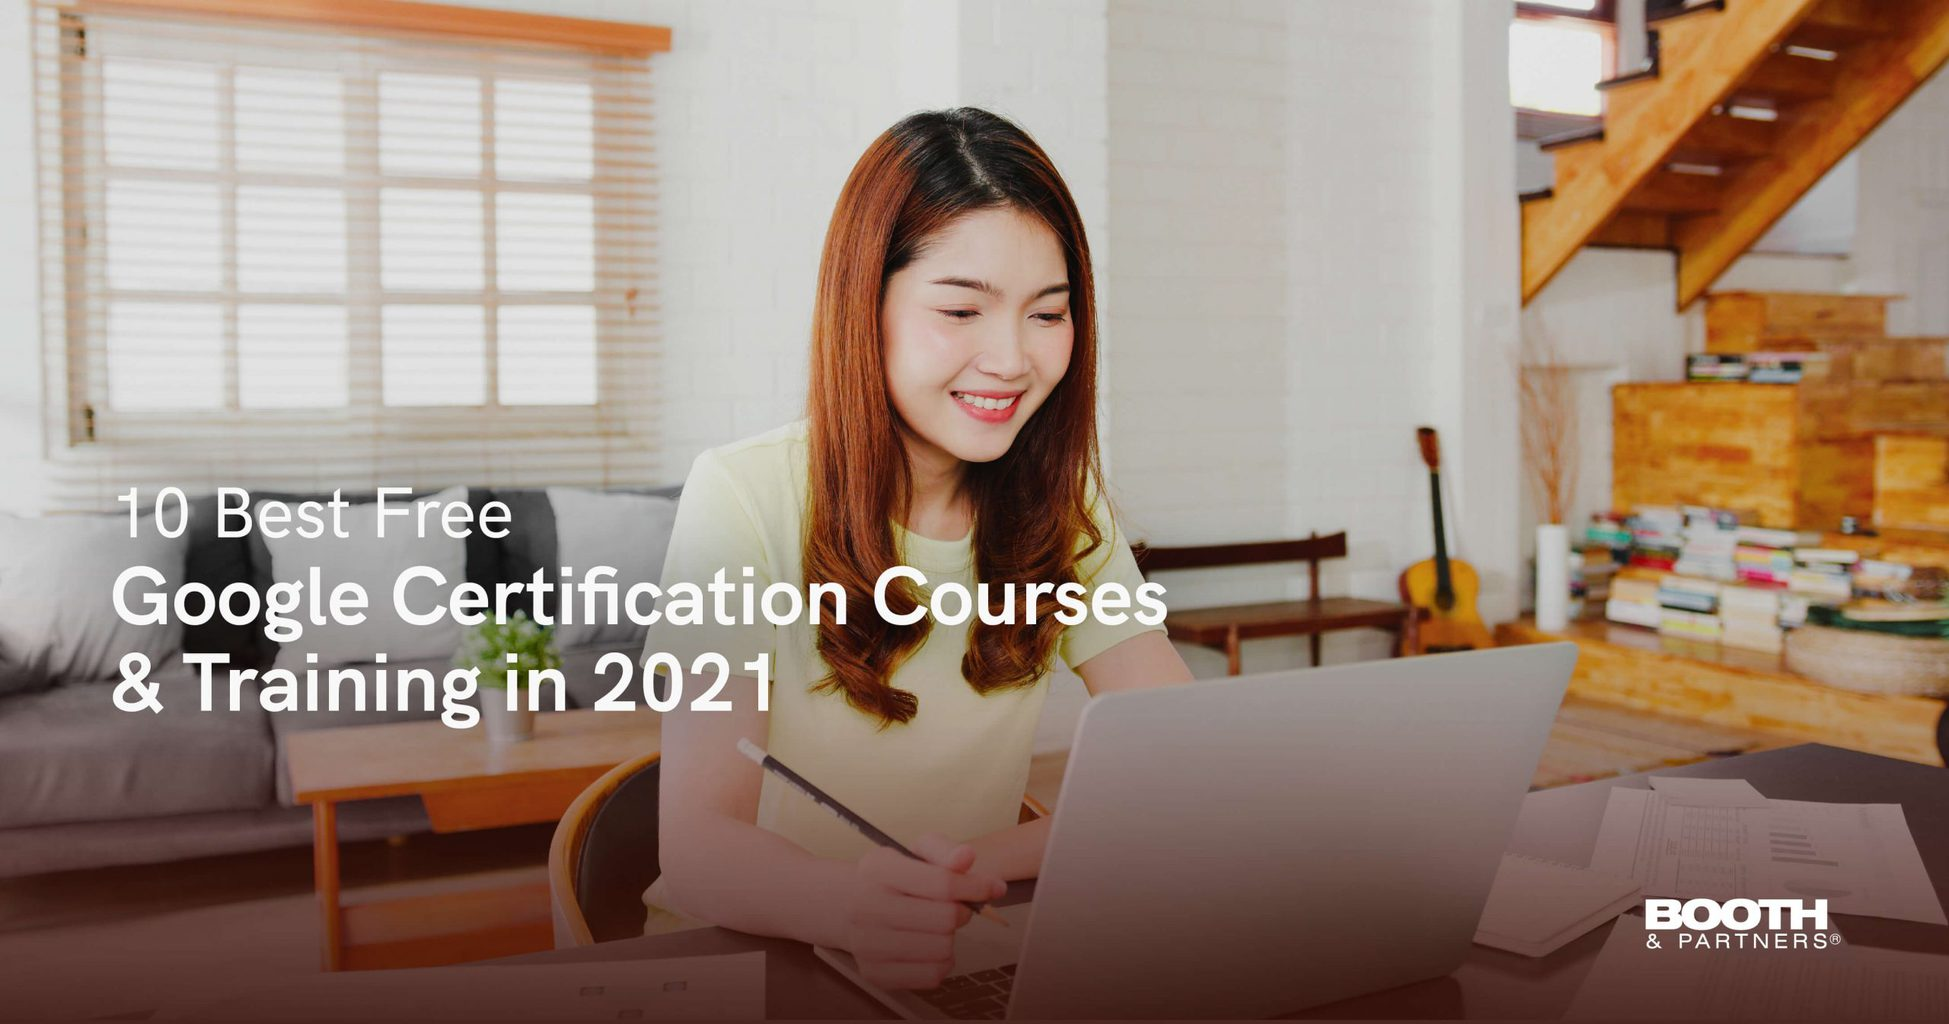 10 Best Free Google Certification Courses & Training in 2021